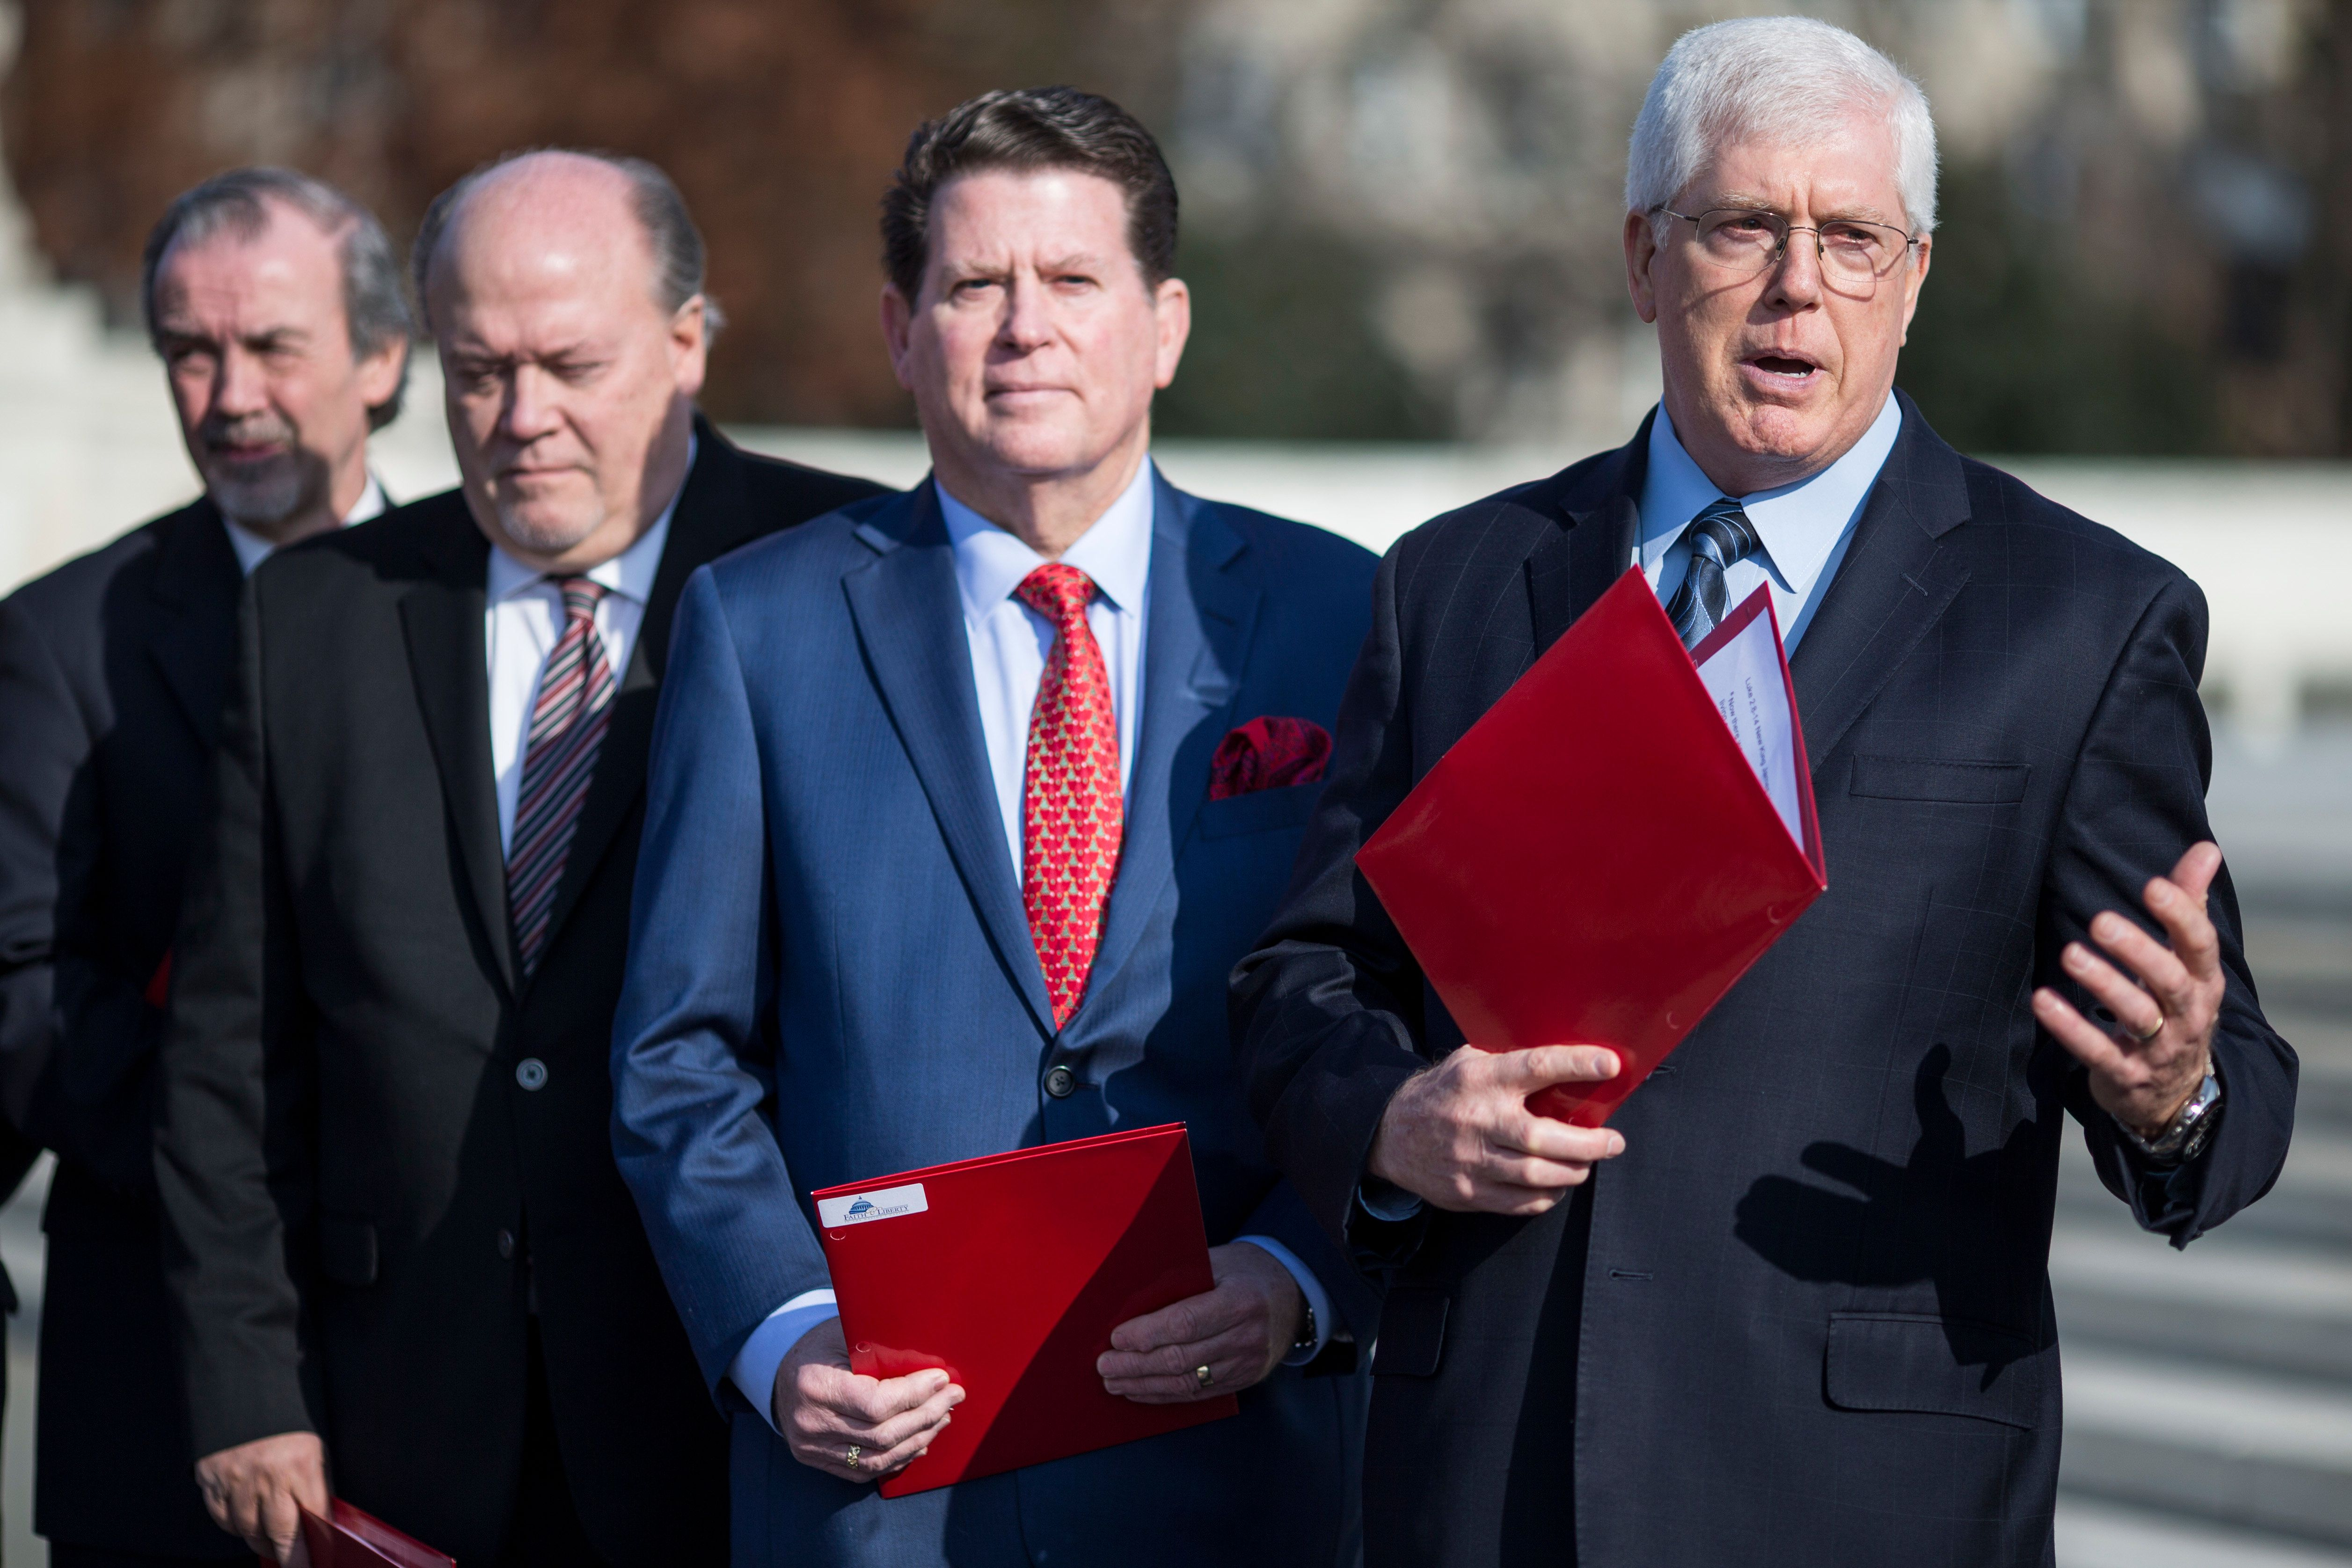 Mat Staver (far right), the founder of Liberty Counsel, at a demonstration outside the Supreme Court in December. The group o